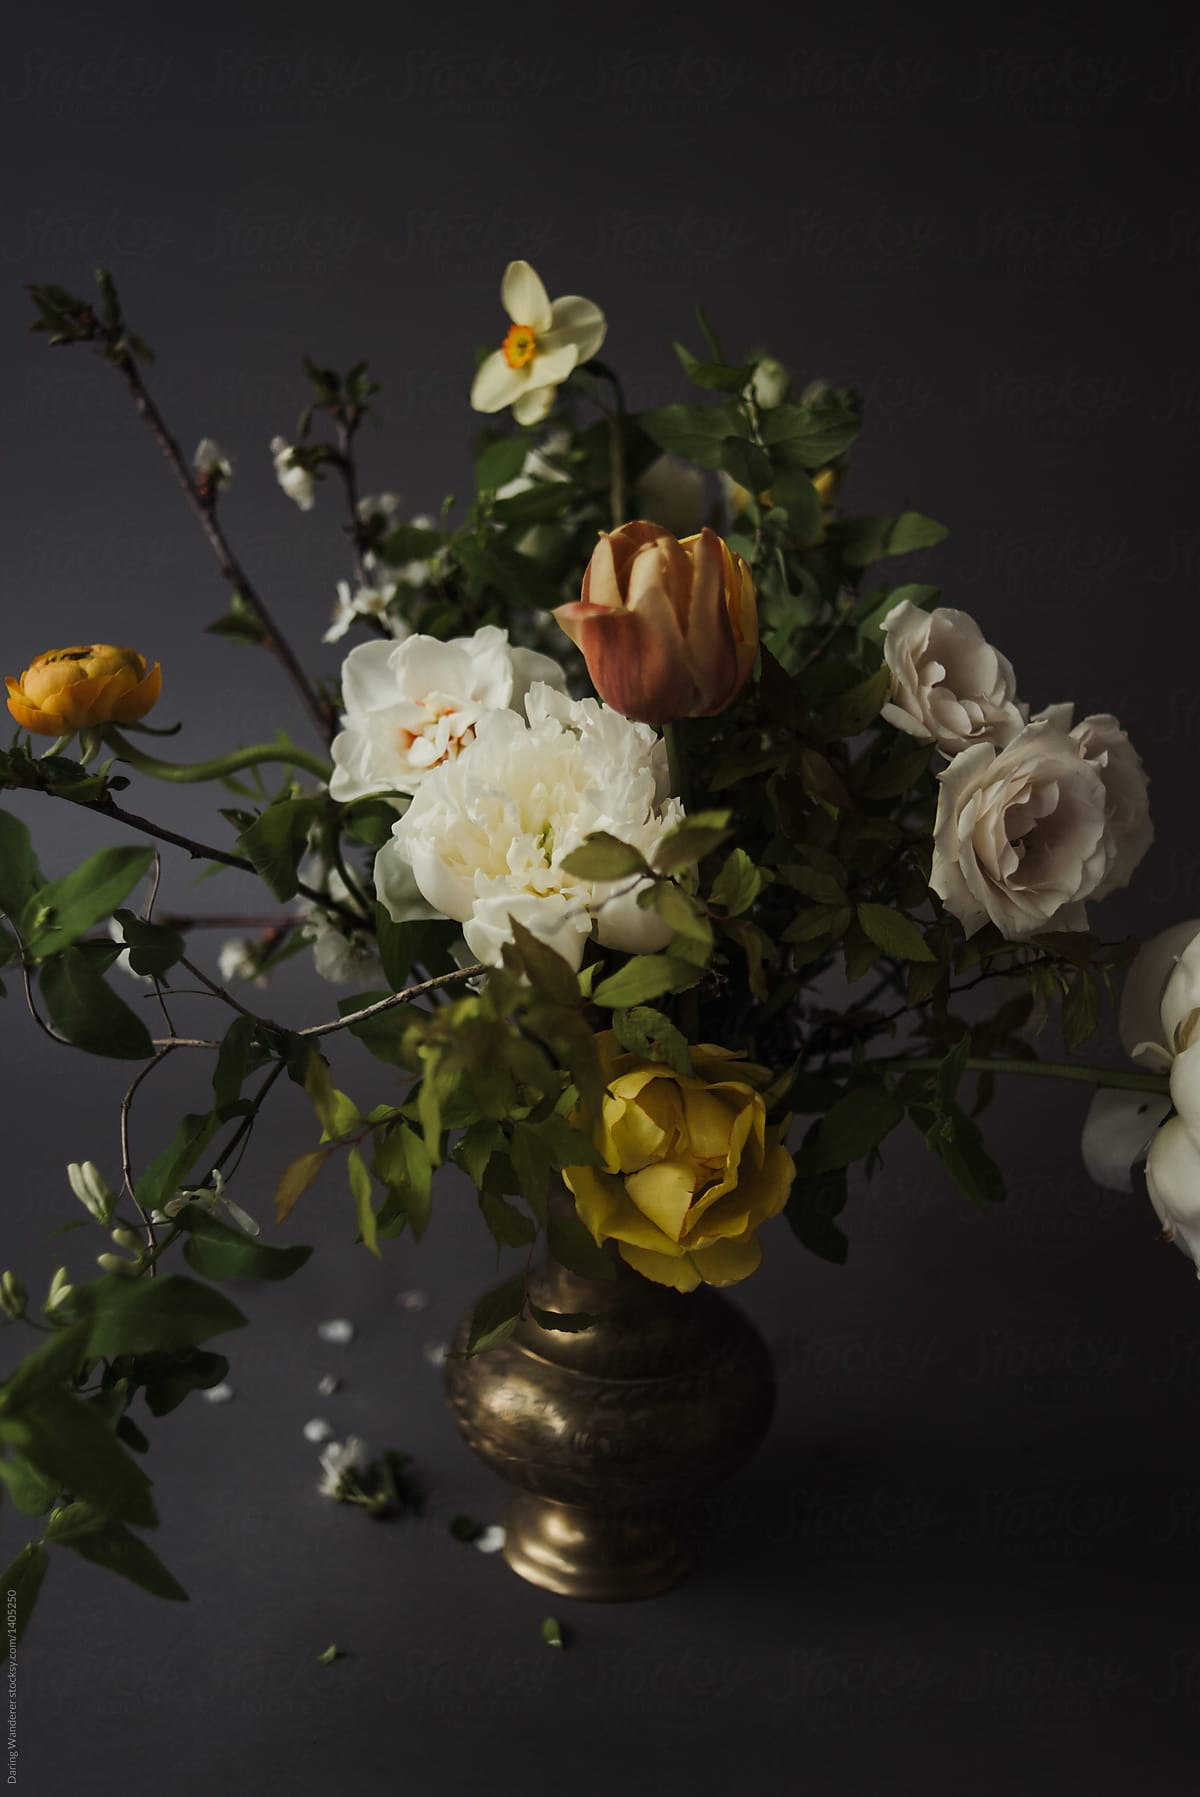 Organic Spring Bouquet Of Garden Roses Tulips Peony And Ranunculus On Dark Background By Jess Craven Stocksy United